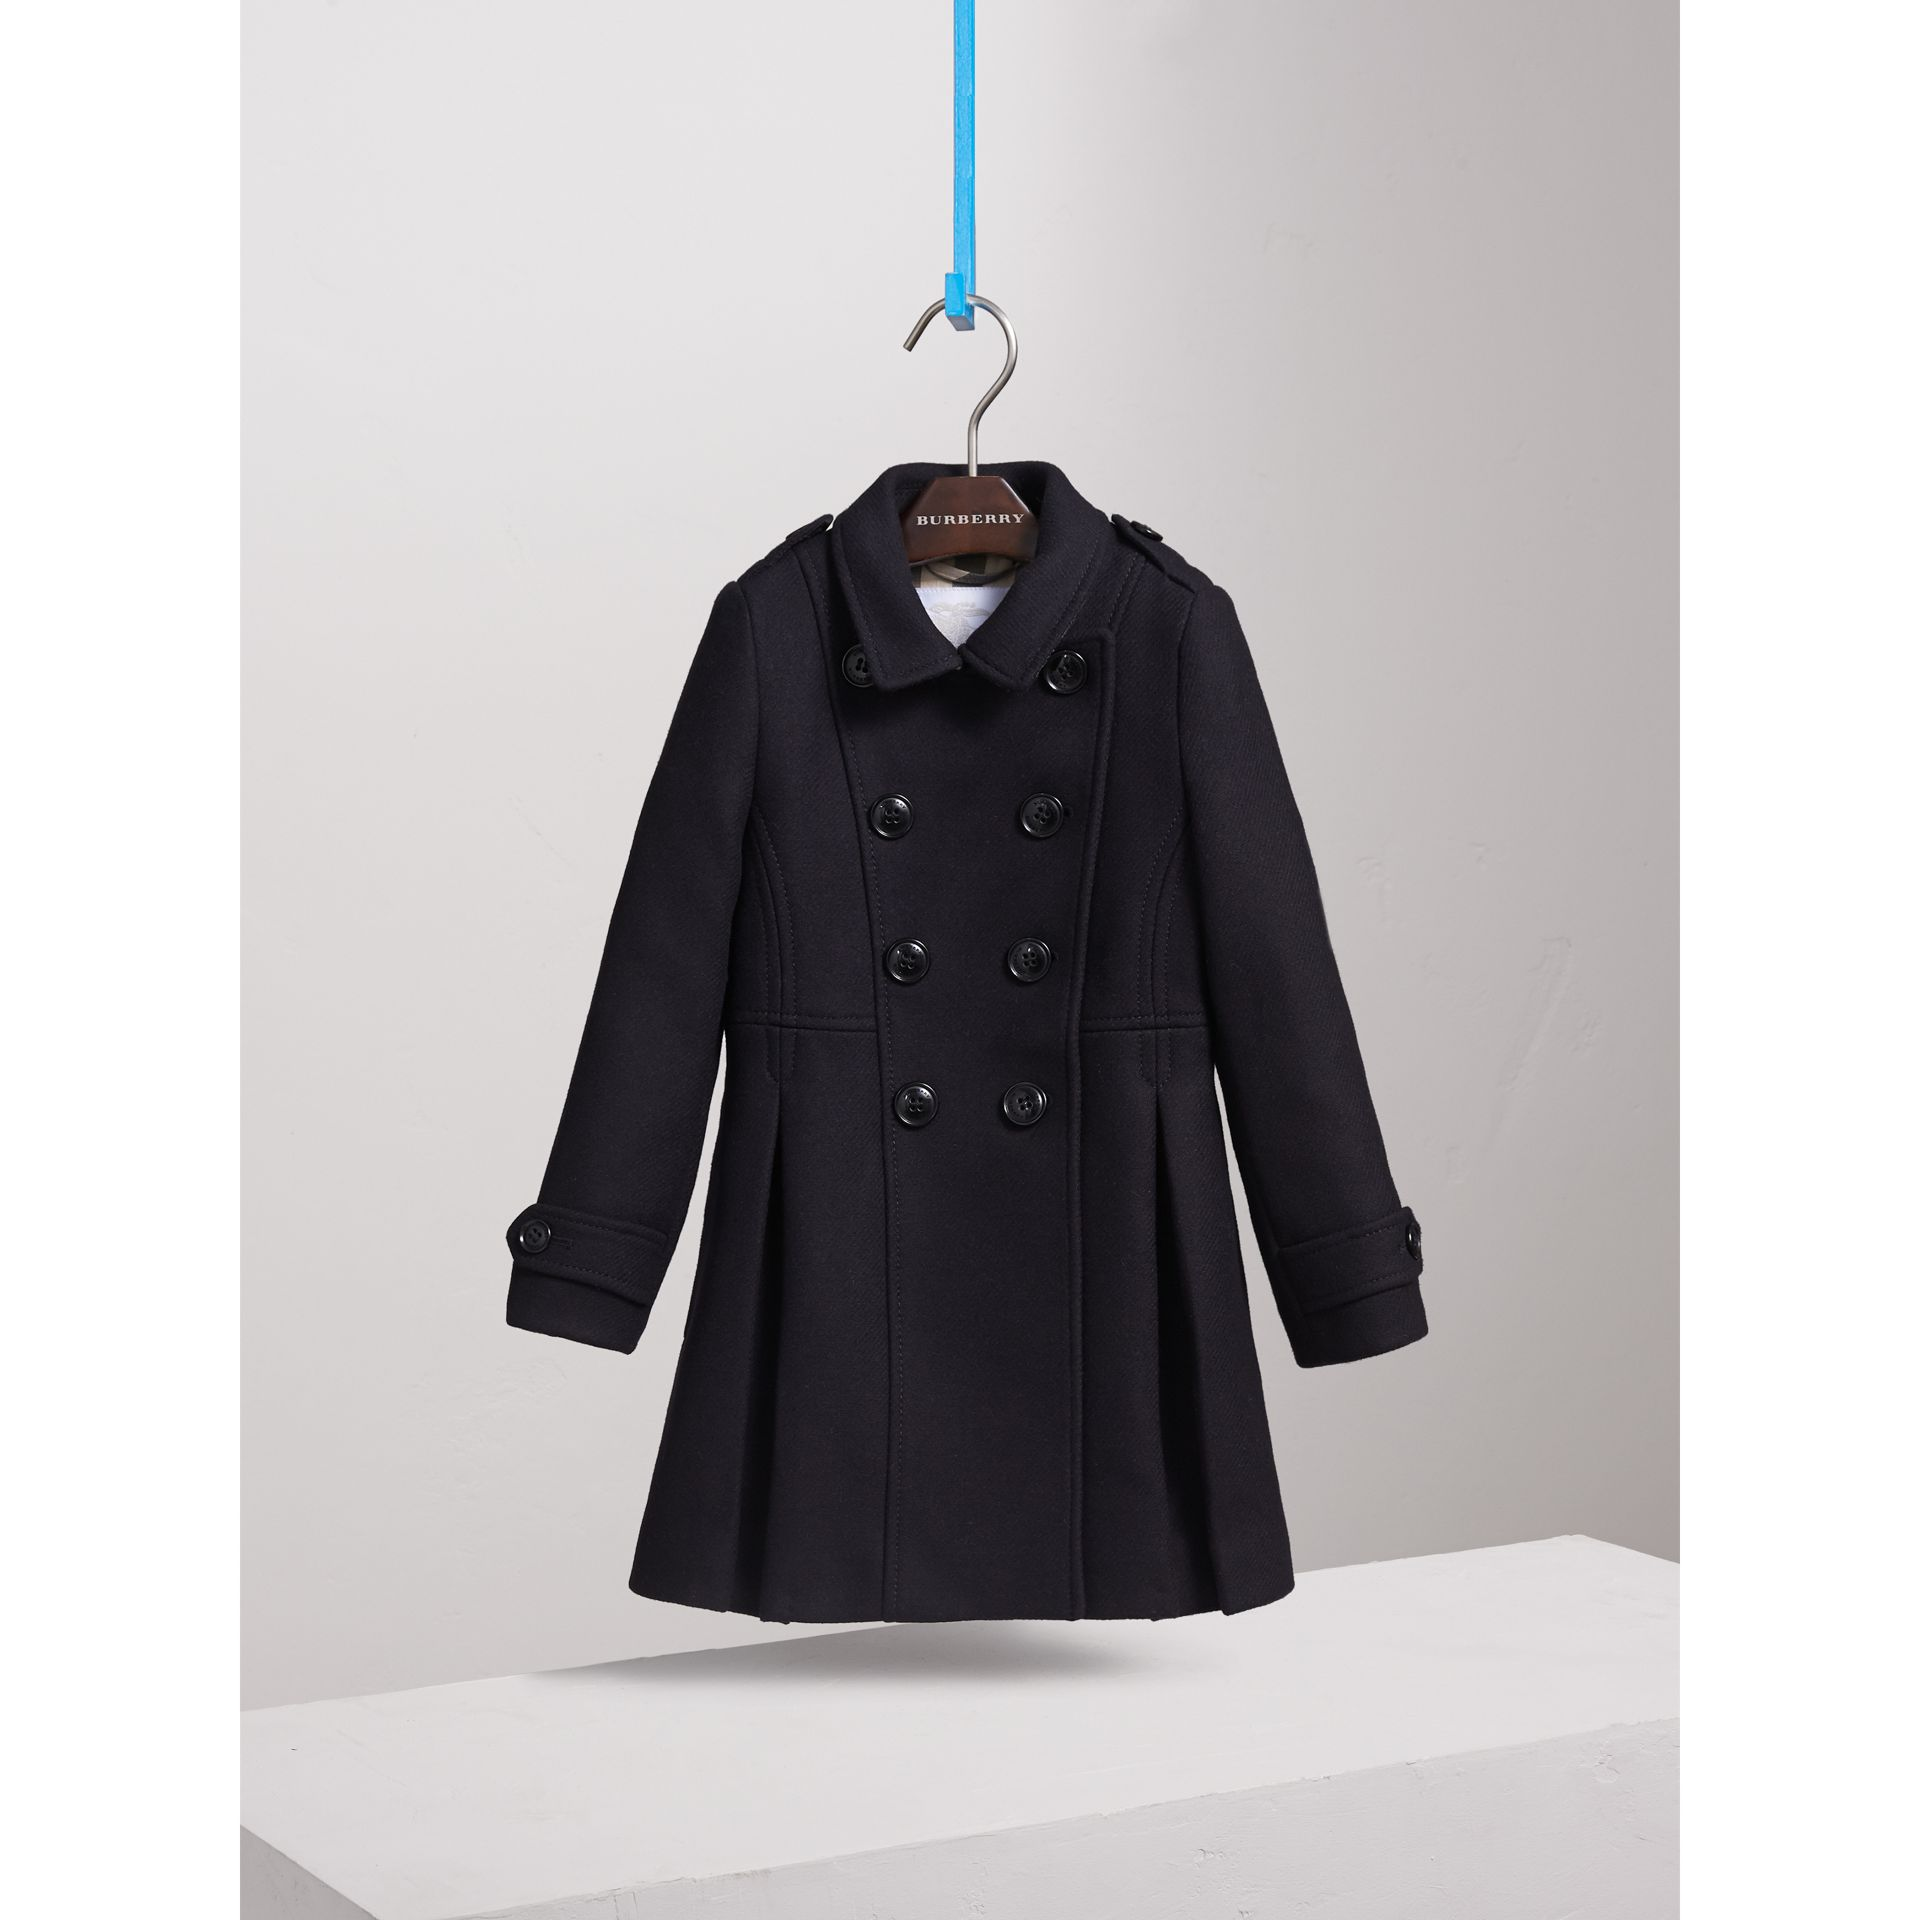 Manteau à double boutonnage en laine et cachemire techniques (Marine) - Fille | Burberry - photo de la galerie 3